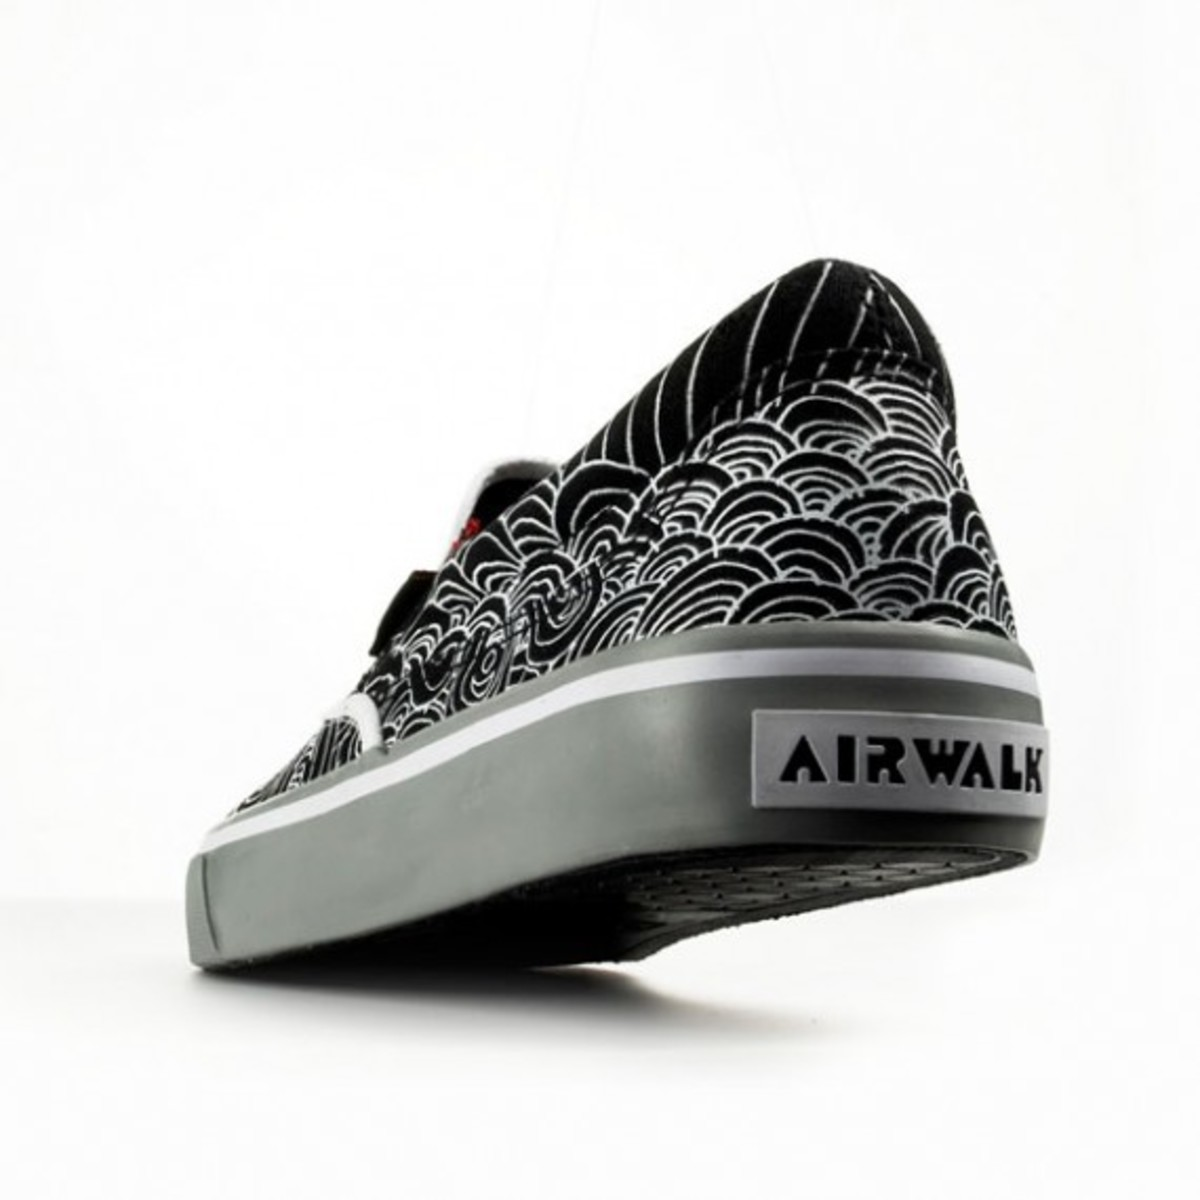 stpl_airwalk_6